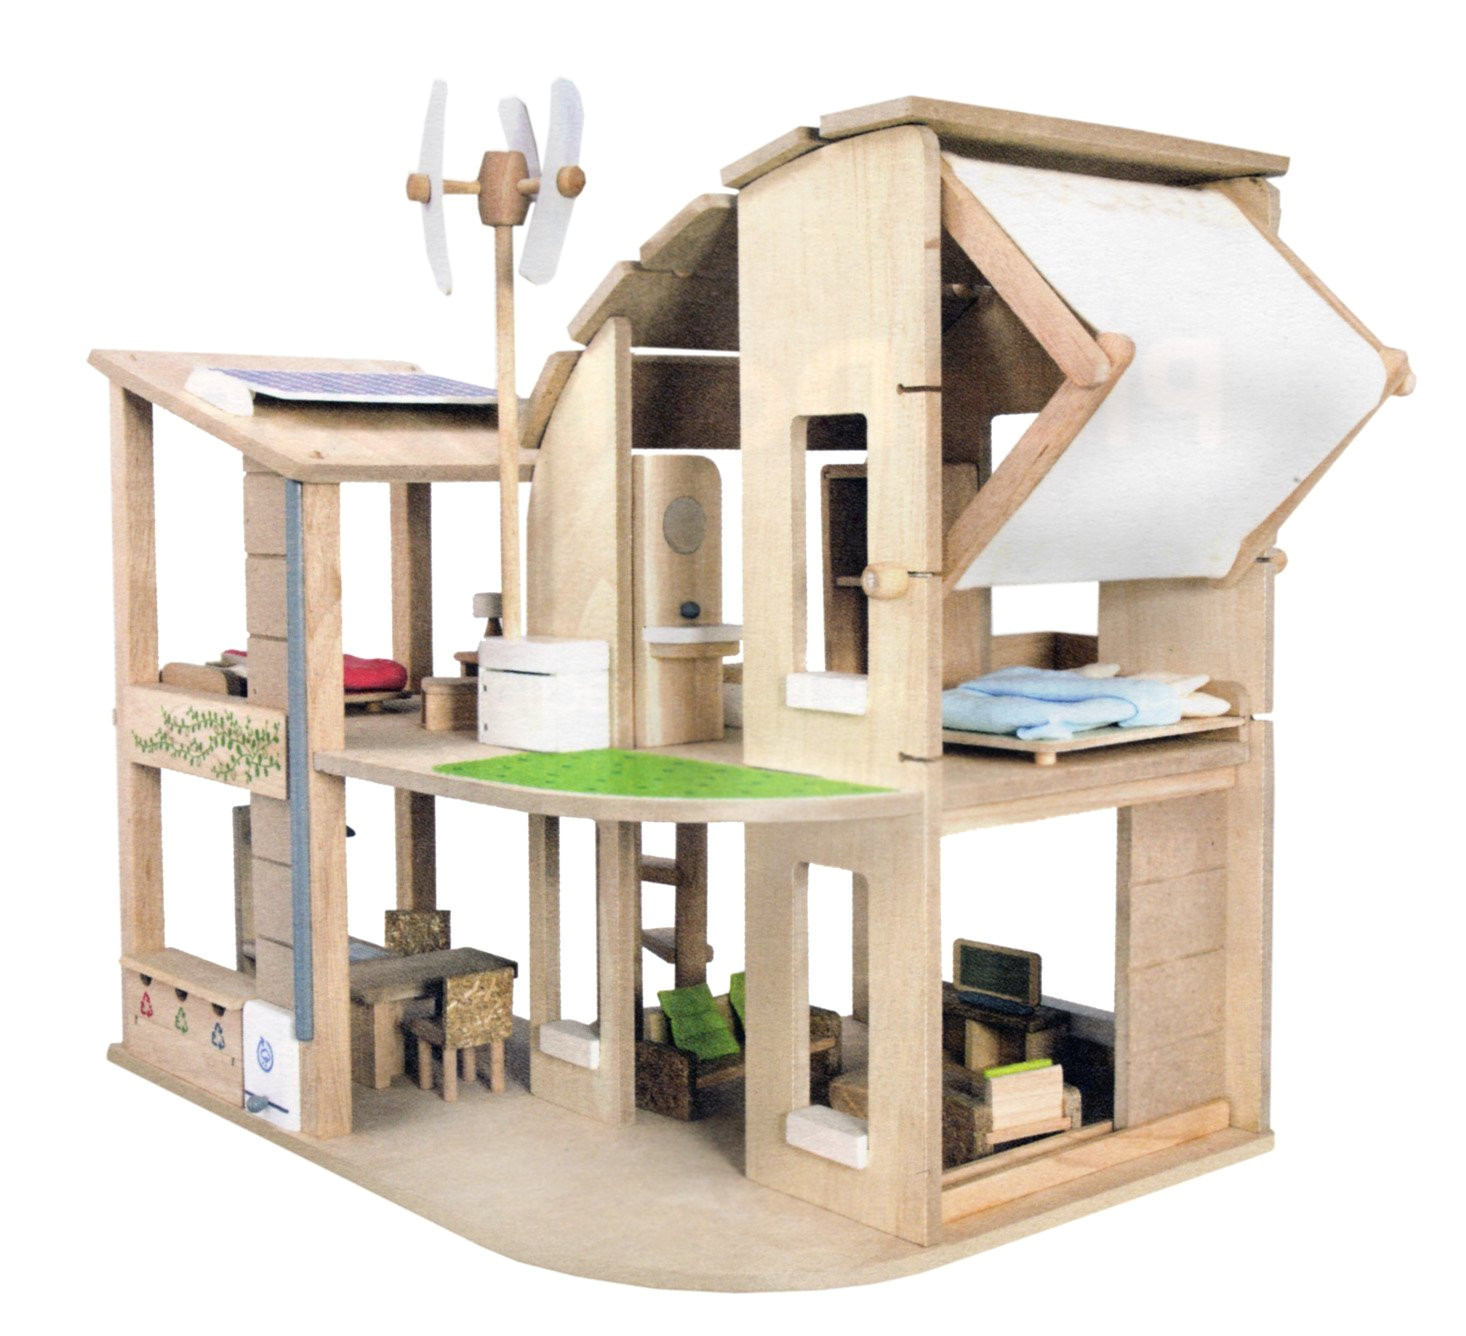 gender neutral alternatives to a pink plastic dollhouse